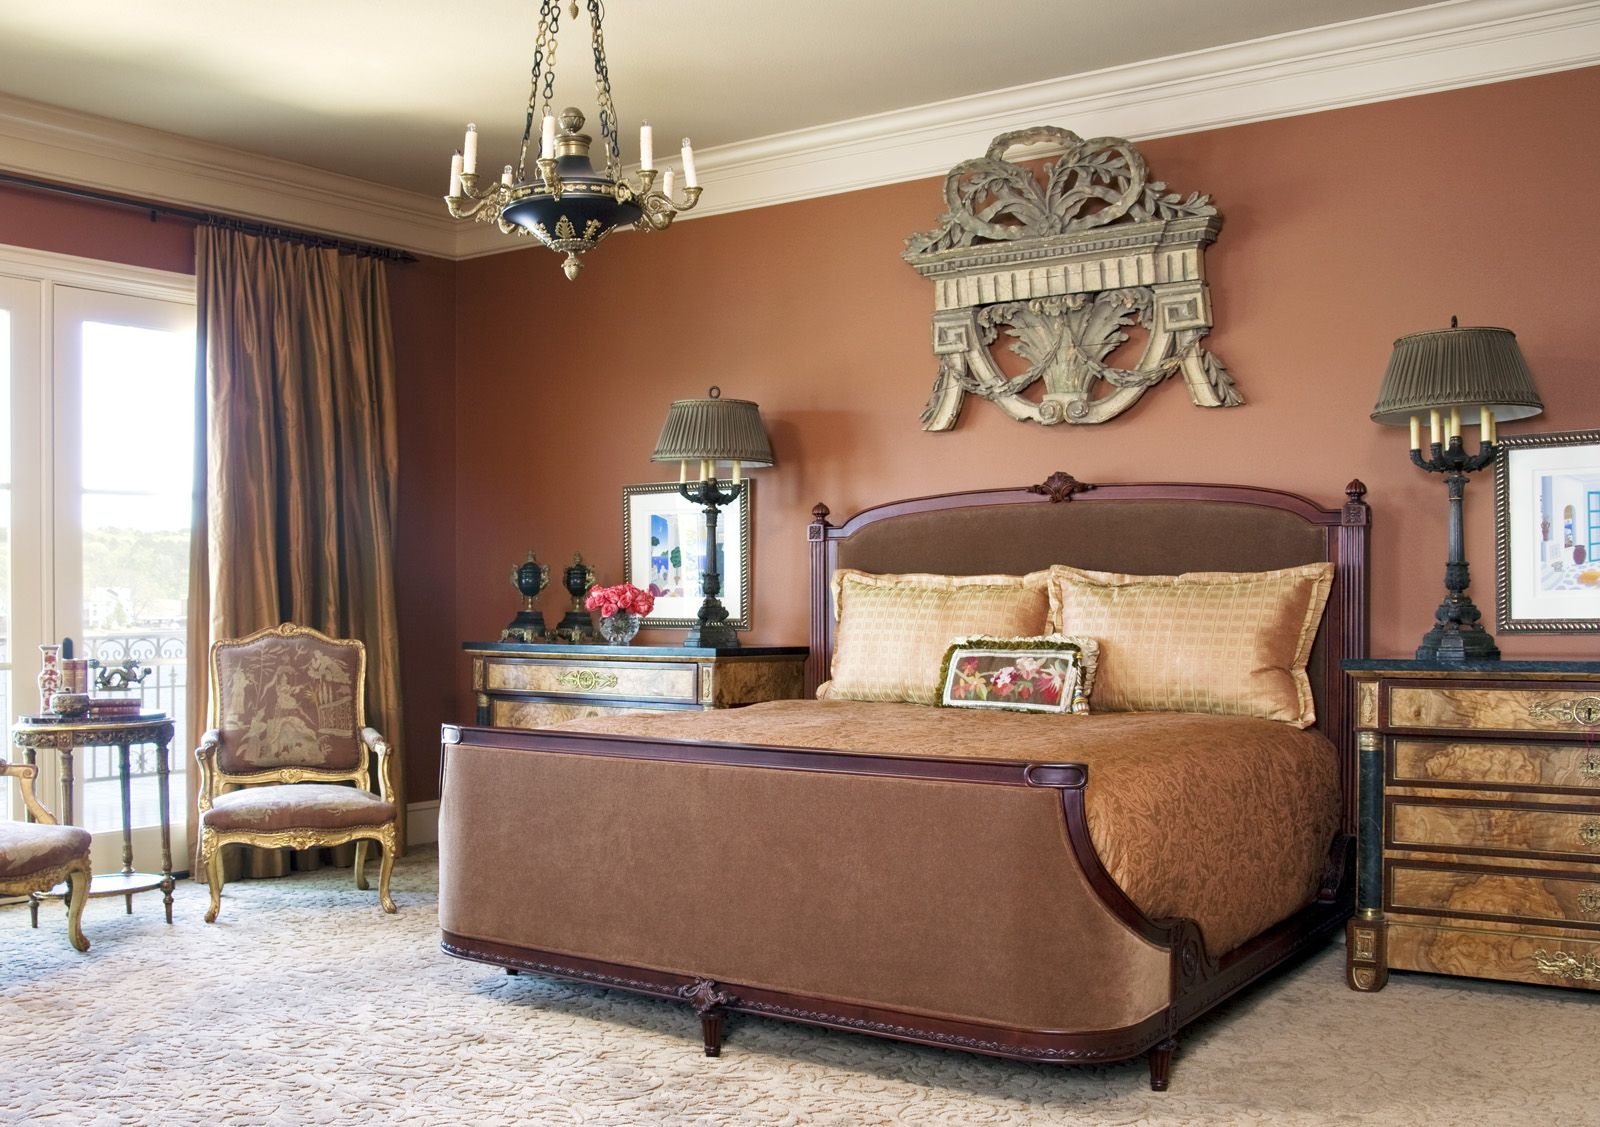 astounding red bedroom walls will | rust red bedroom walls, white crown molding | Paint it ...